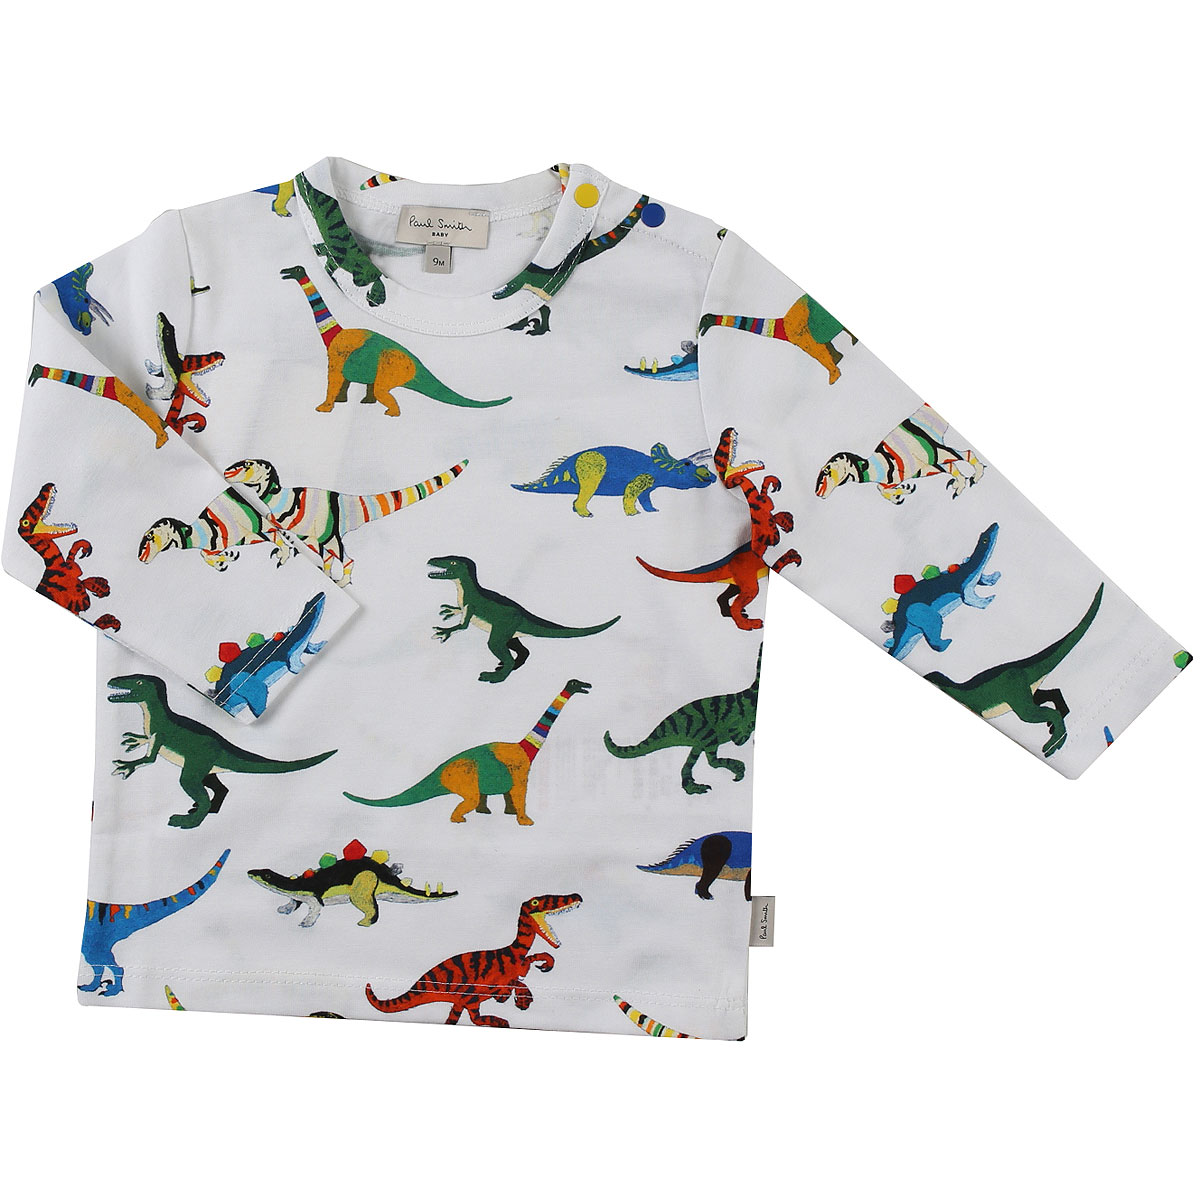 Image of Paul Smith Baby T-Shirt for Boys, White, Cotton, 2017, 12M 18M 2Y 3Y 6M 9M